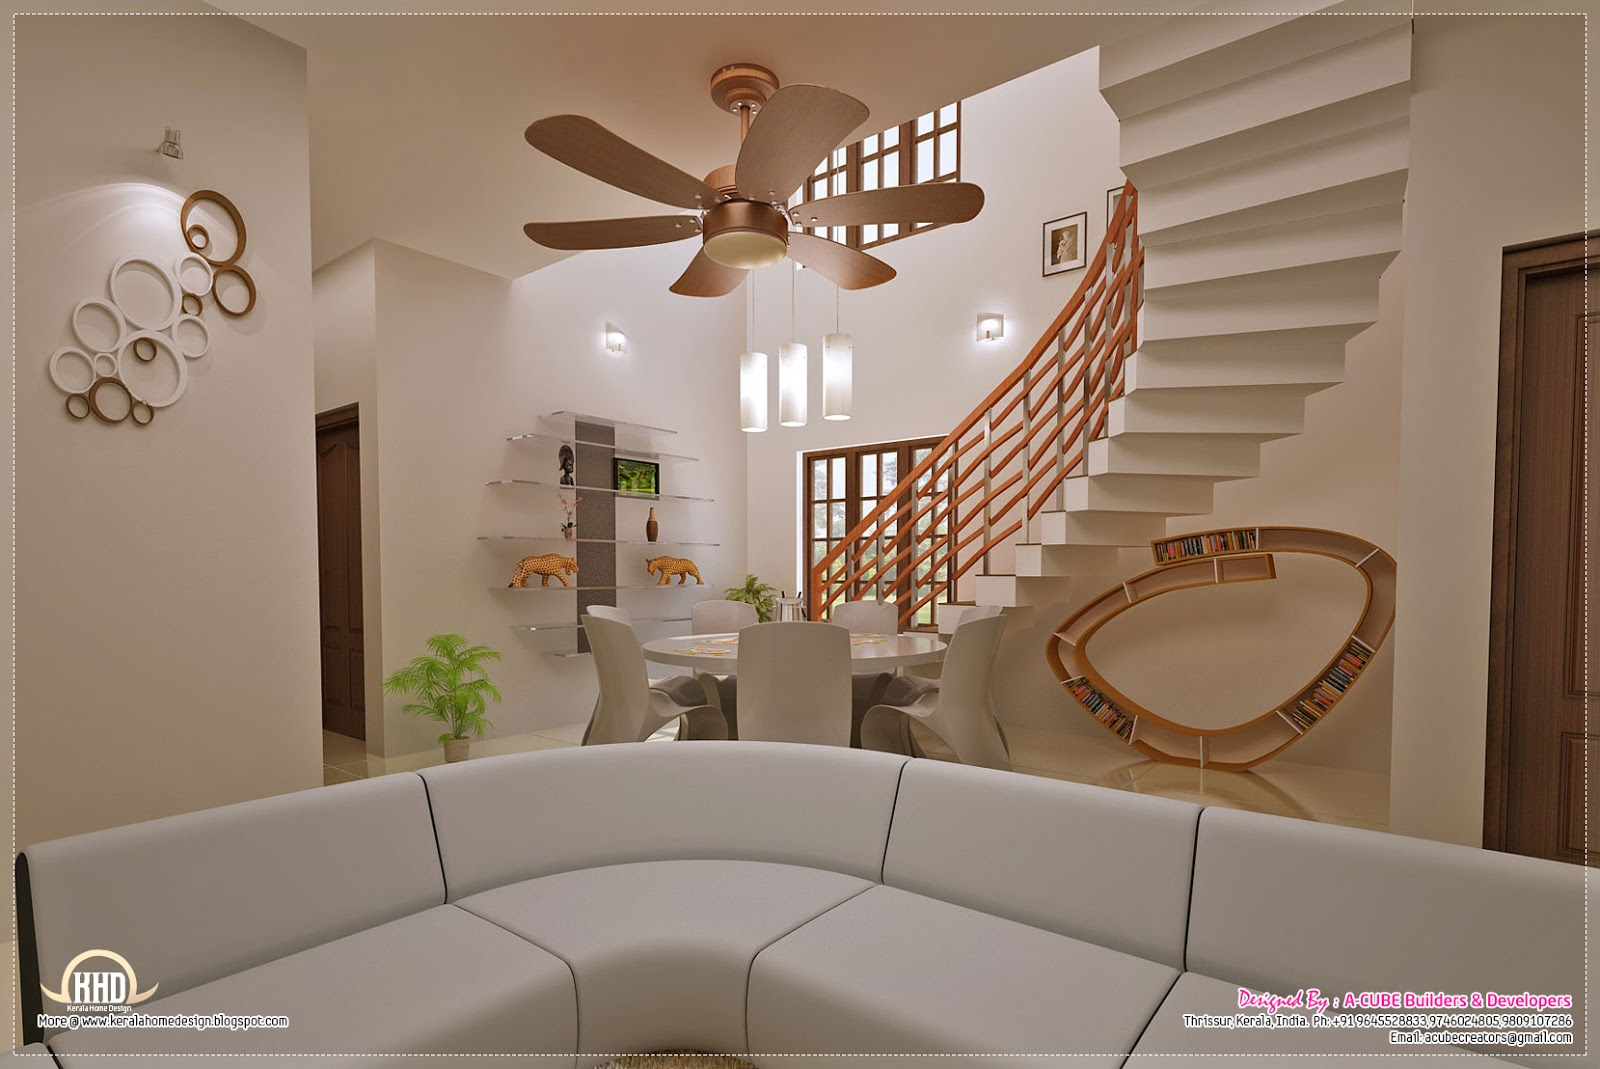 Awesome interior decoration ideas home kerala plans Home interior design ideas in chennai